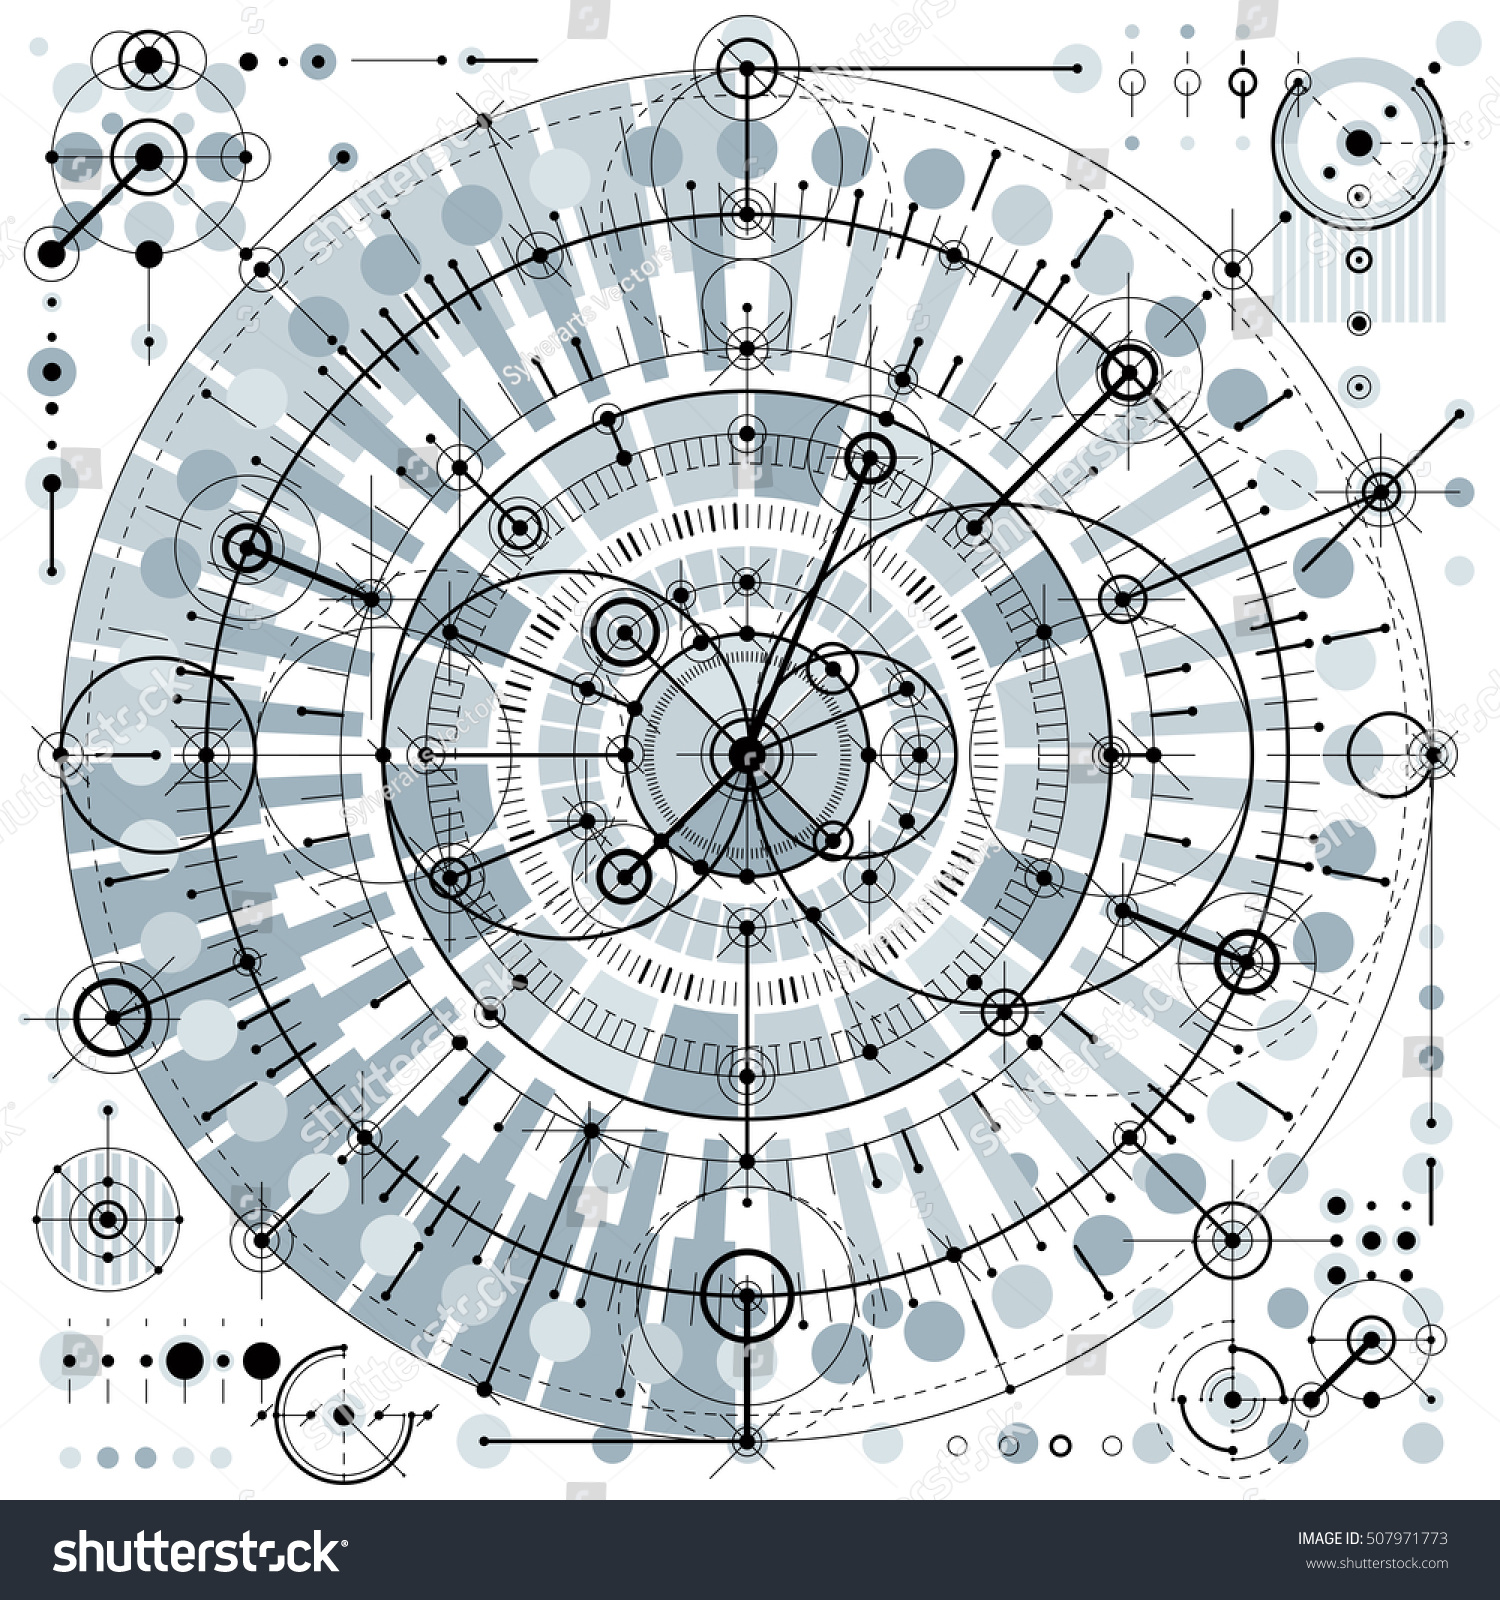 Architectural blueprint vector digital background different stock architectural blueprint vector digital background with different geometric design elements for use as website malvernweather Gallery